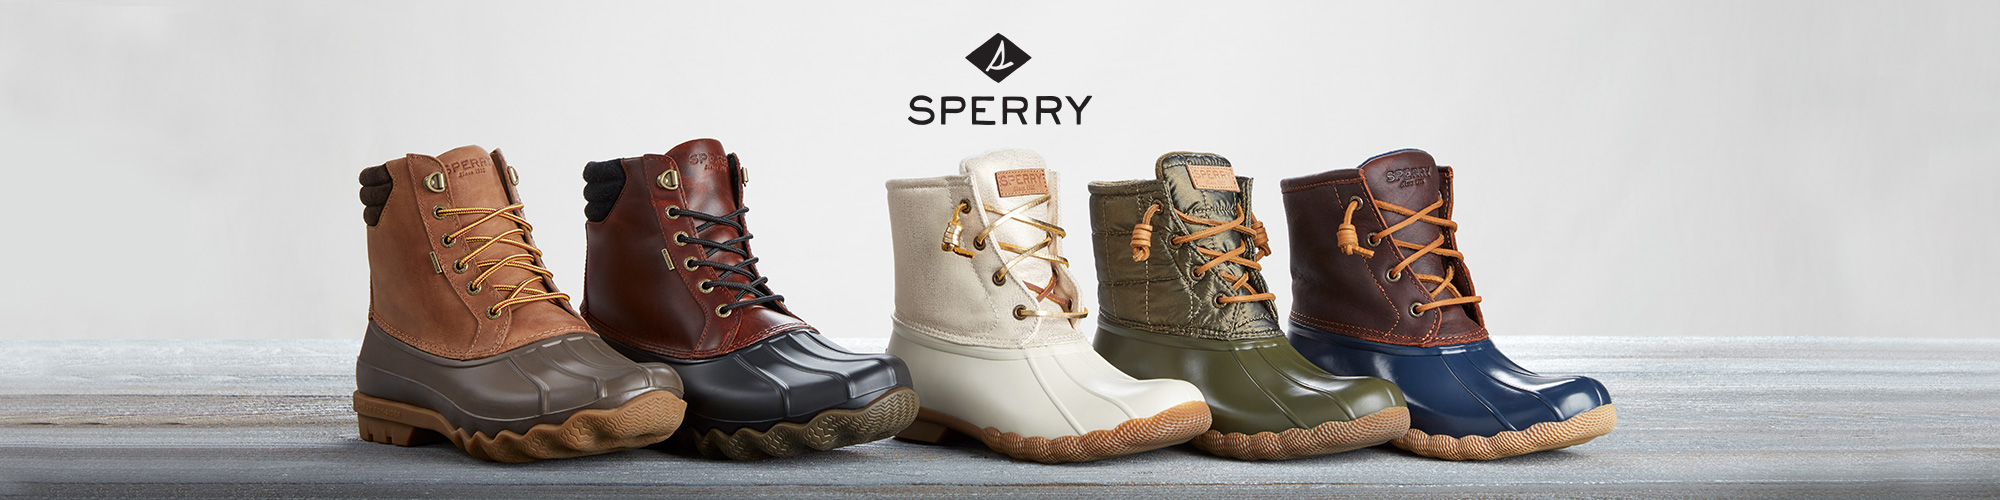 sperry duck boots & boat shoes